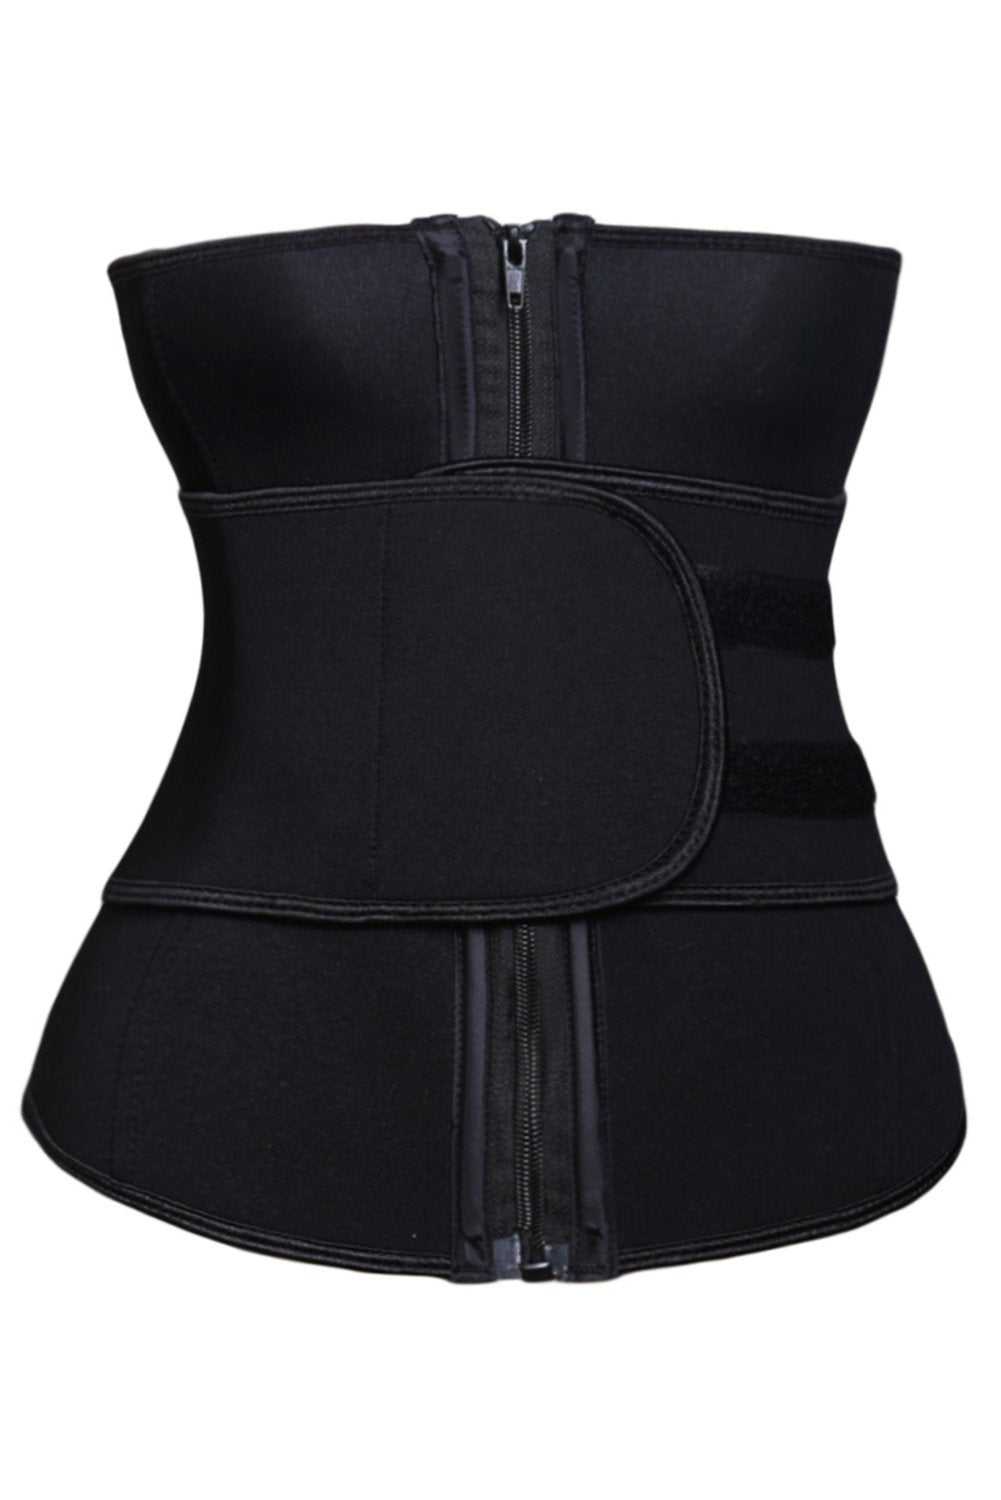 MPG Store Belt Waist Trainer and Body Shaper 071815